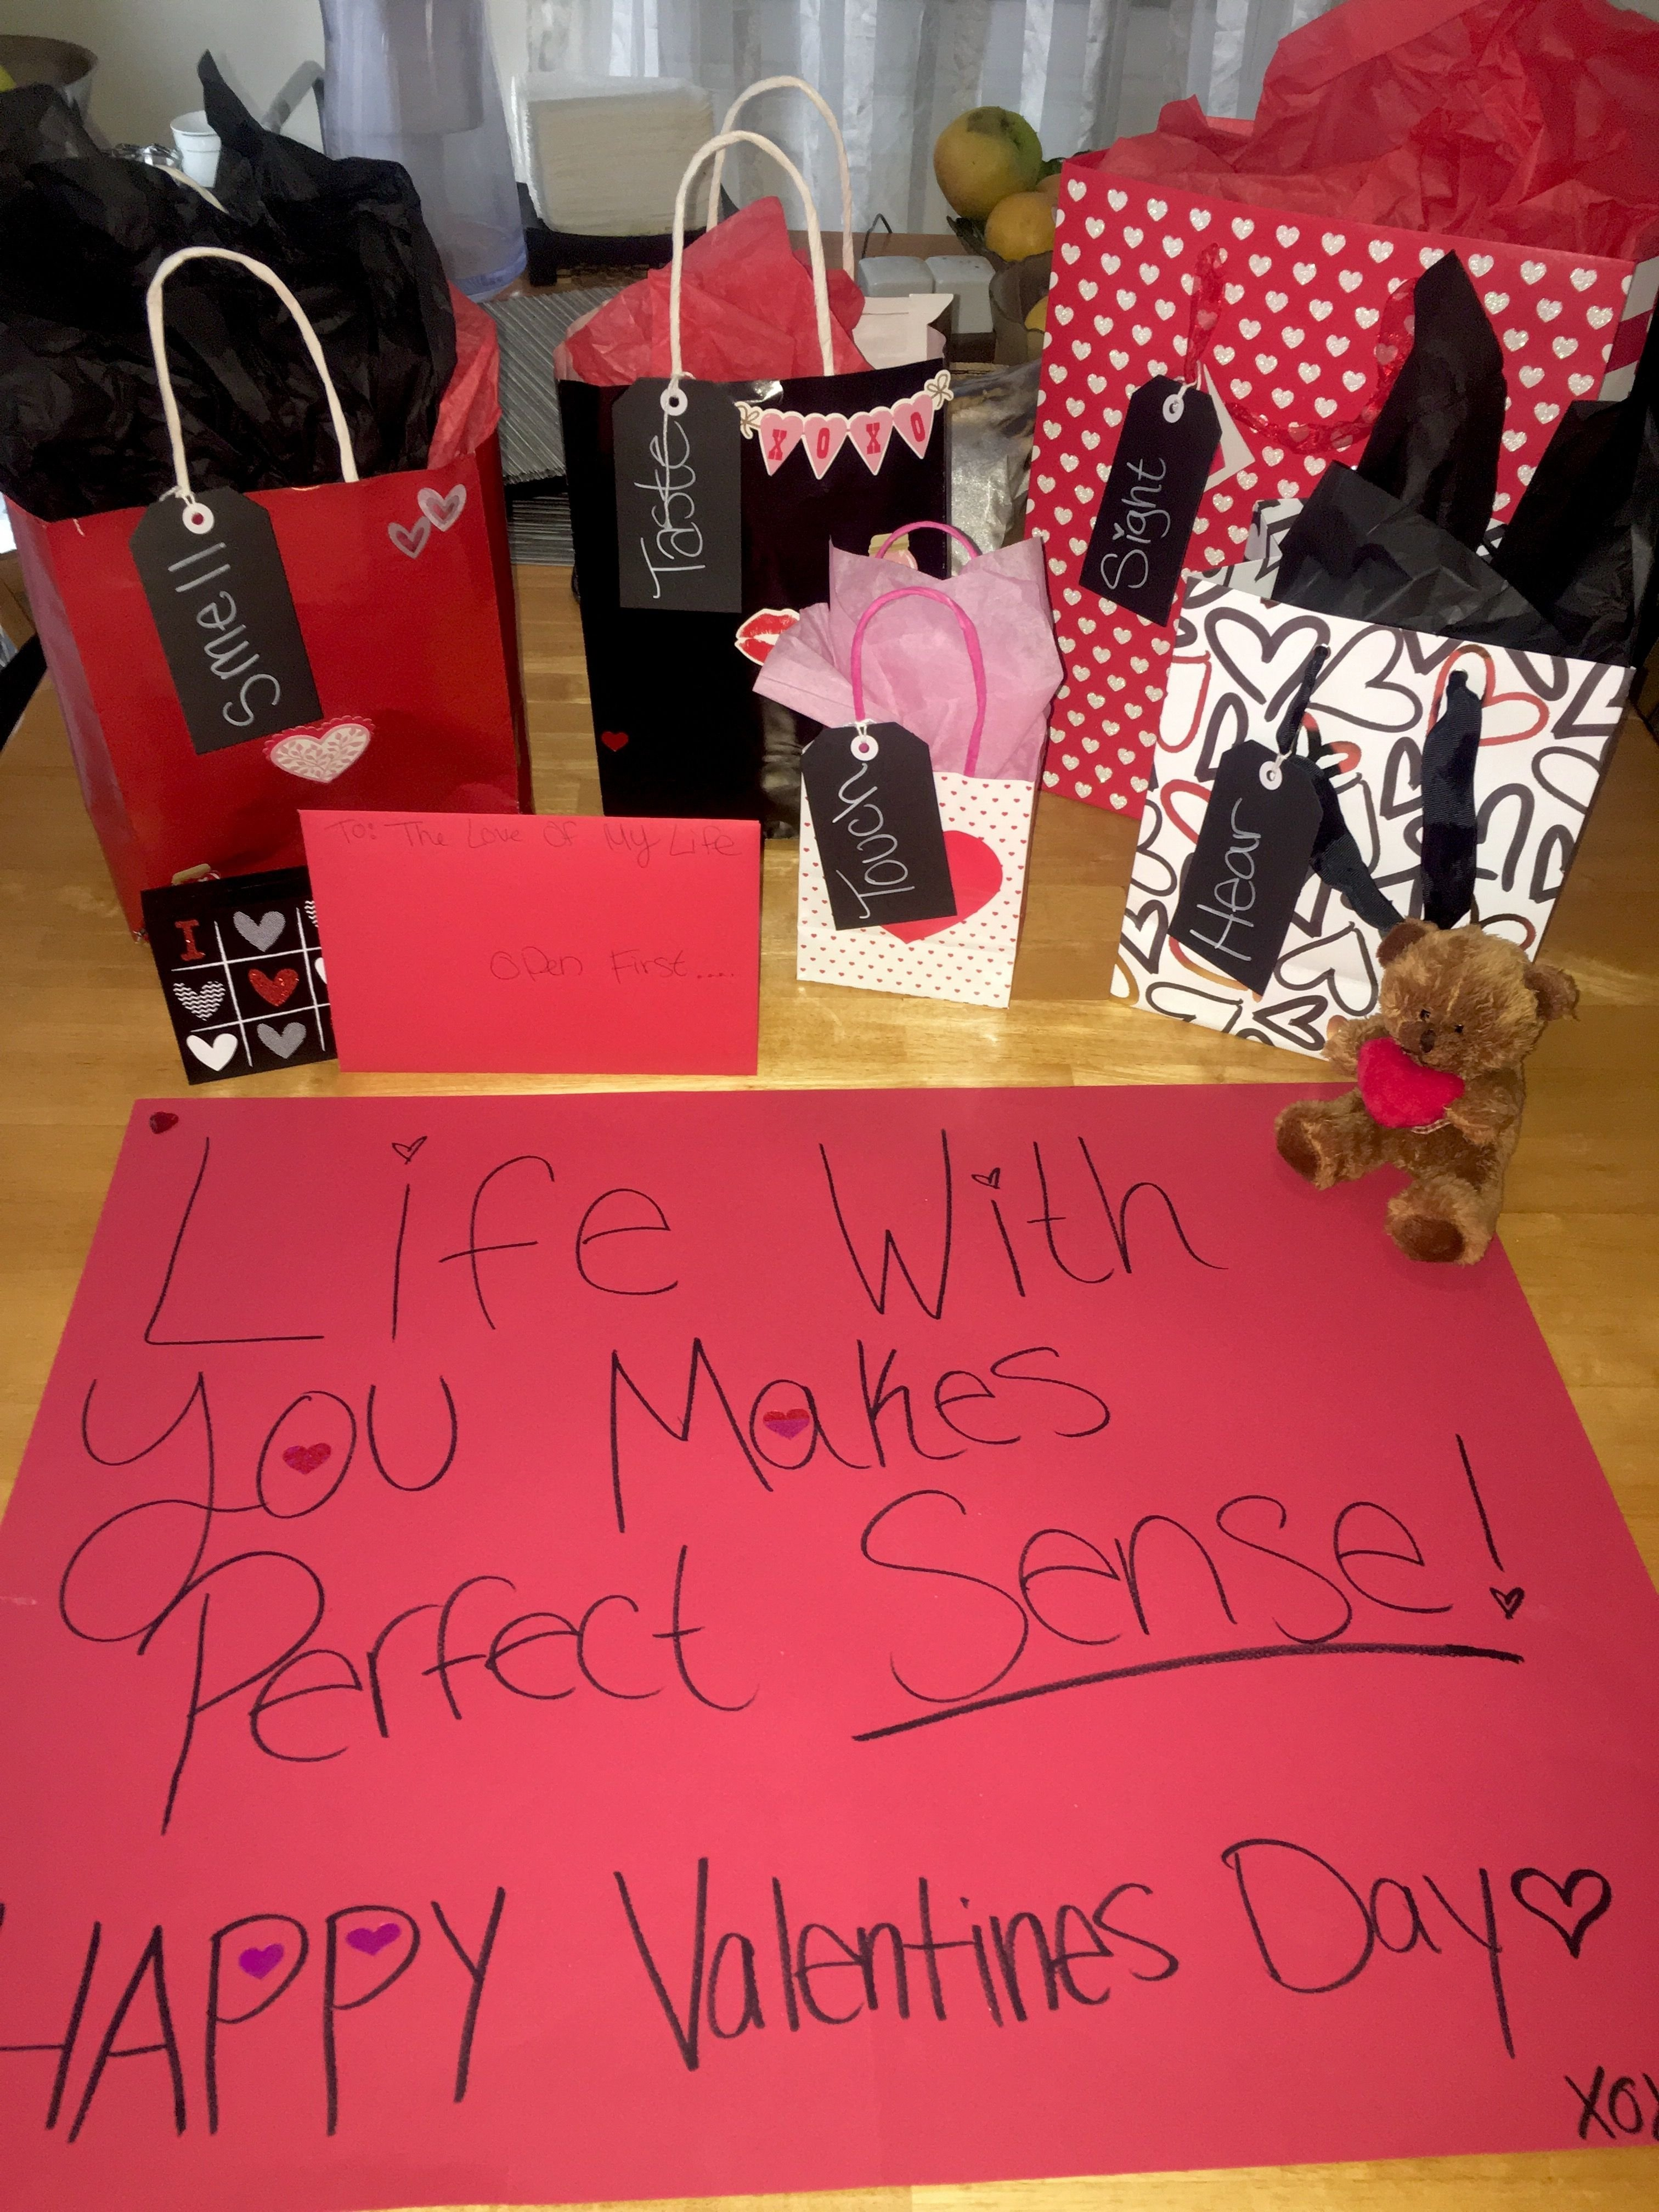 10 Fashionable Valentines Day Ideas For Boyfriend 5 senses gift for him happy valentines day babee299a5 diys 2021